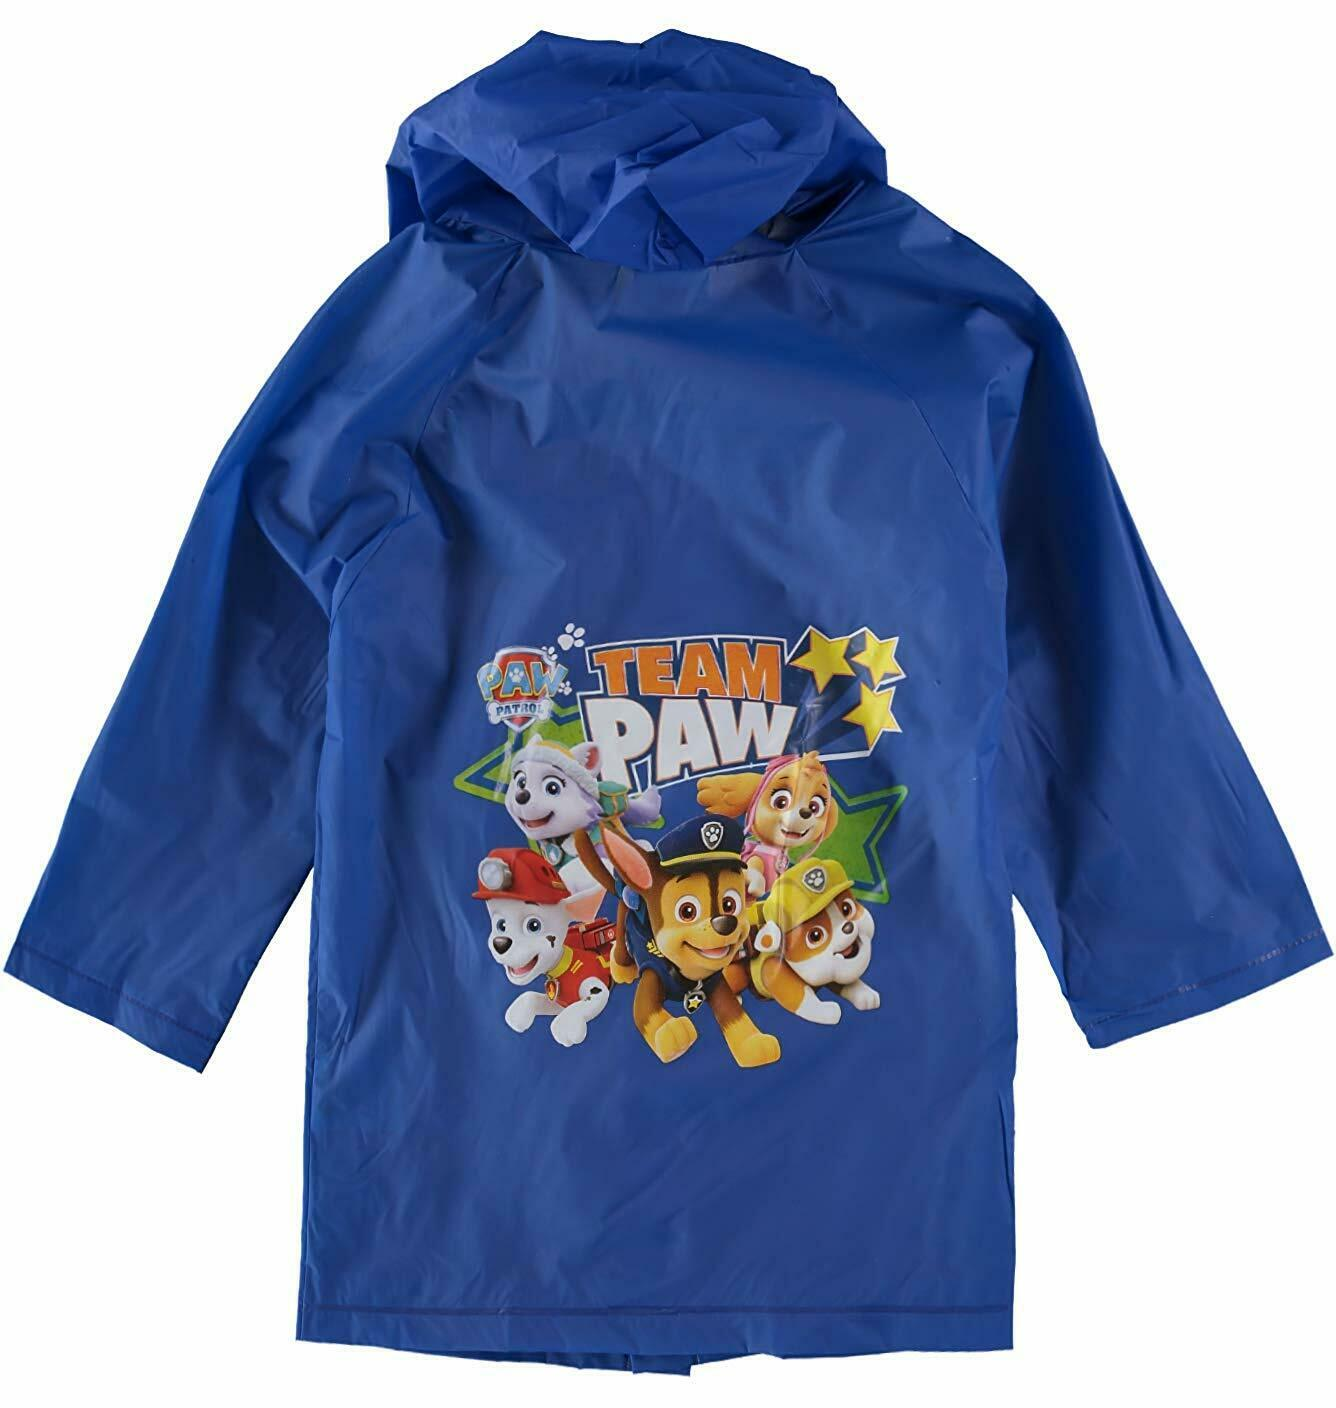 Paw Patrol Boys Hooded Size Rain Coat Jacket Waterproof Yout